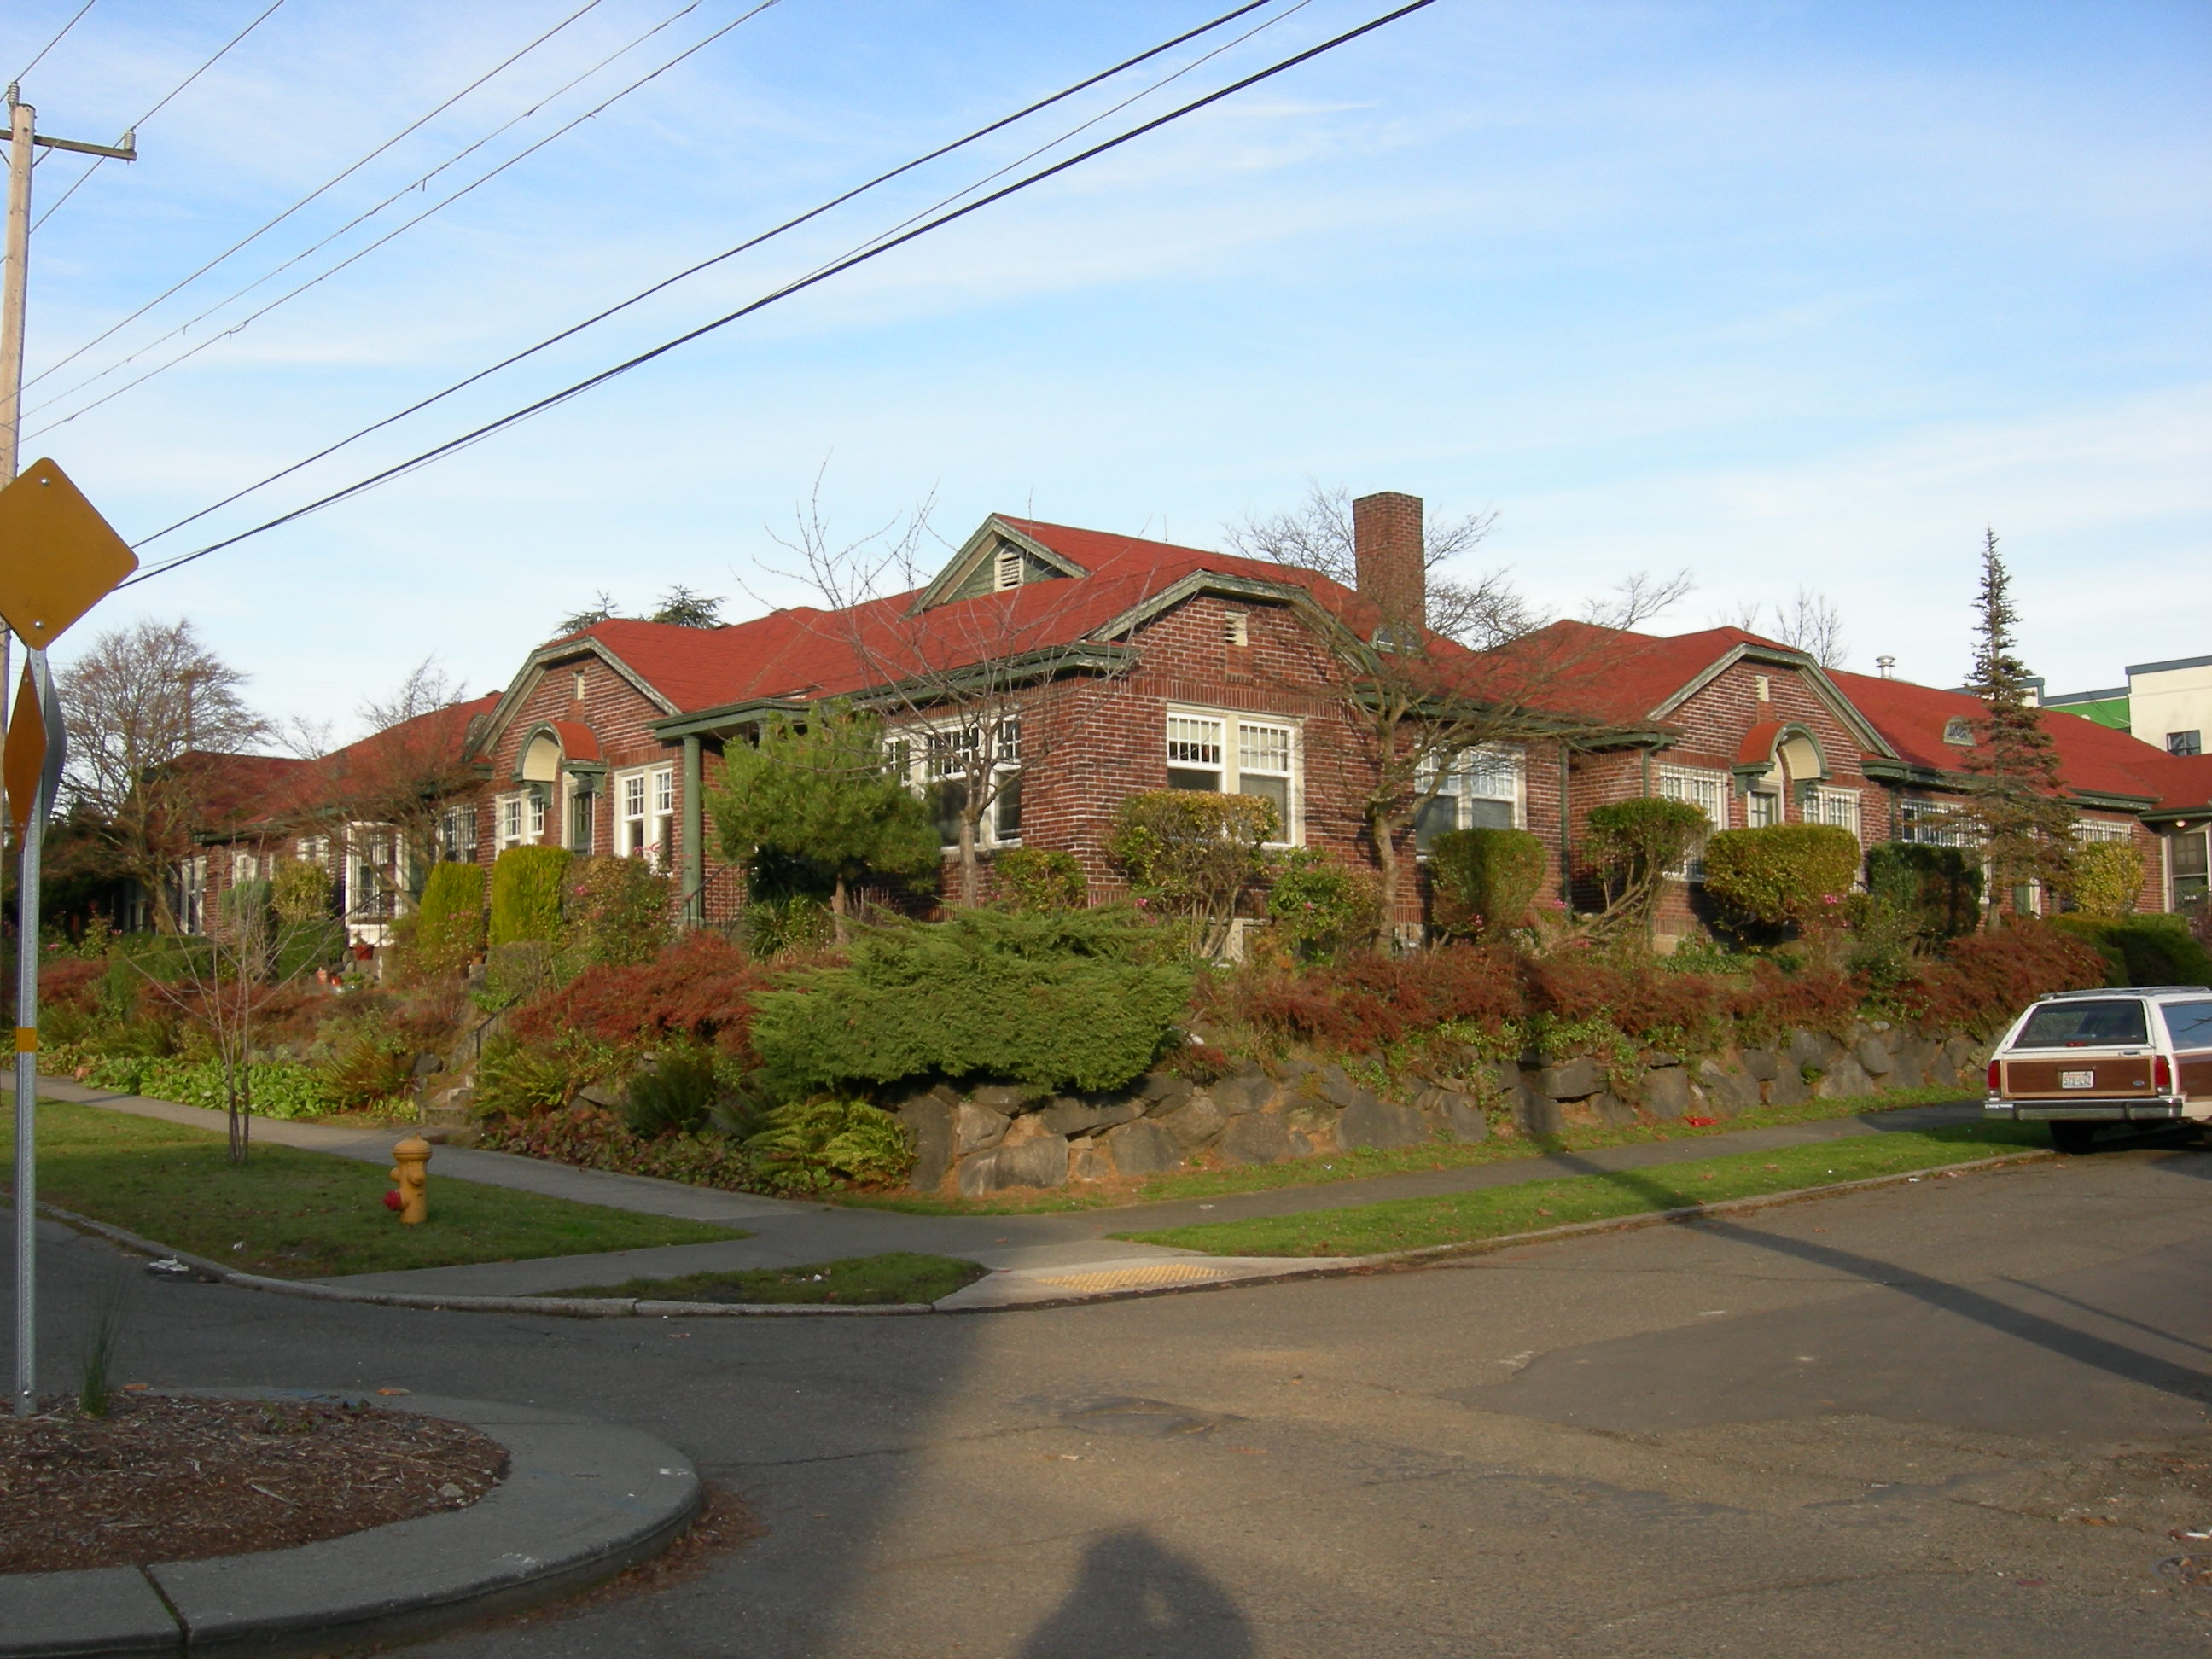 File:Seattle - garden apartments at 18th and Spruce.jpg - Wikimedia ...